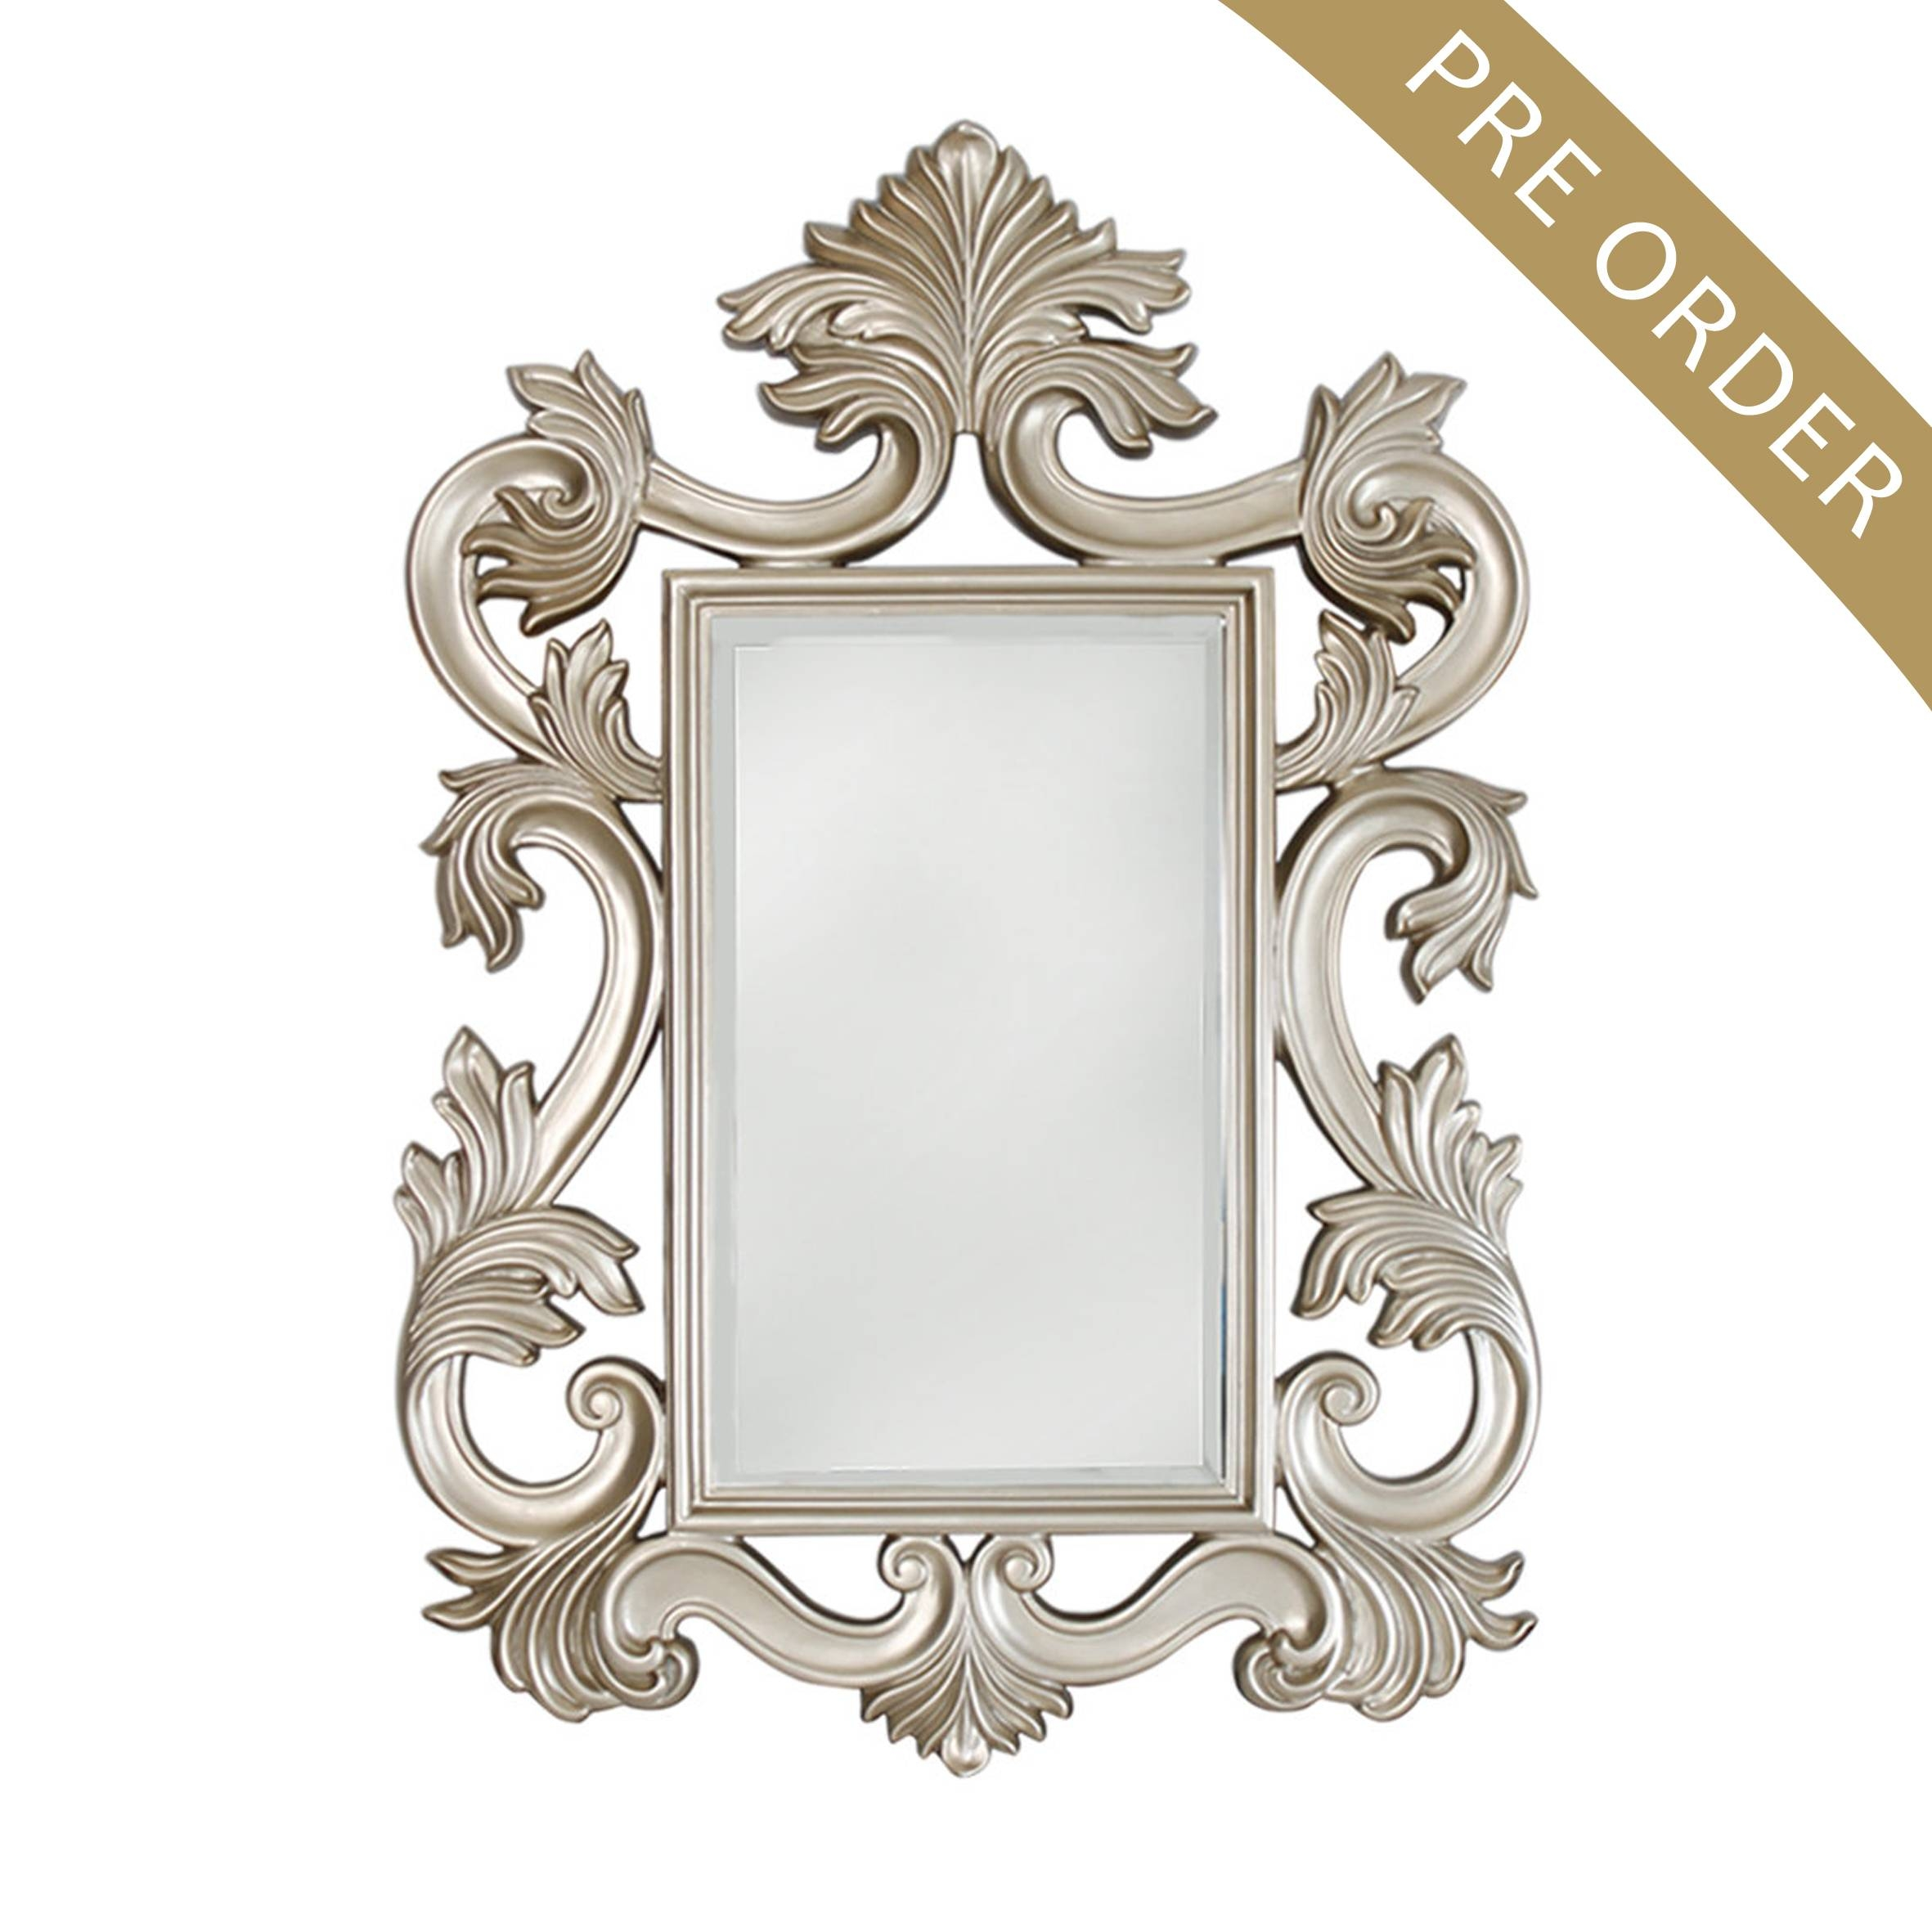 Large Oval Baroque Mirror Wall Acedf - Surripui throughout Baroque Wall Mirrors (Image 9 of 15)